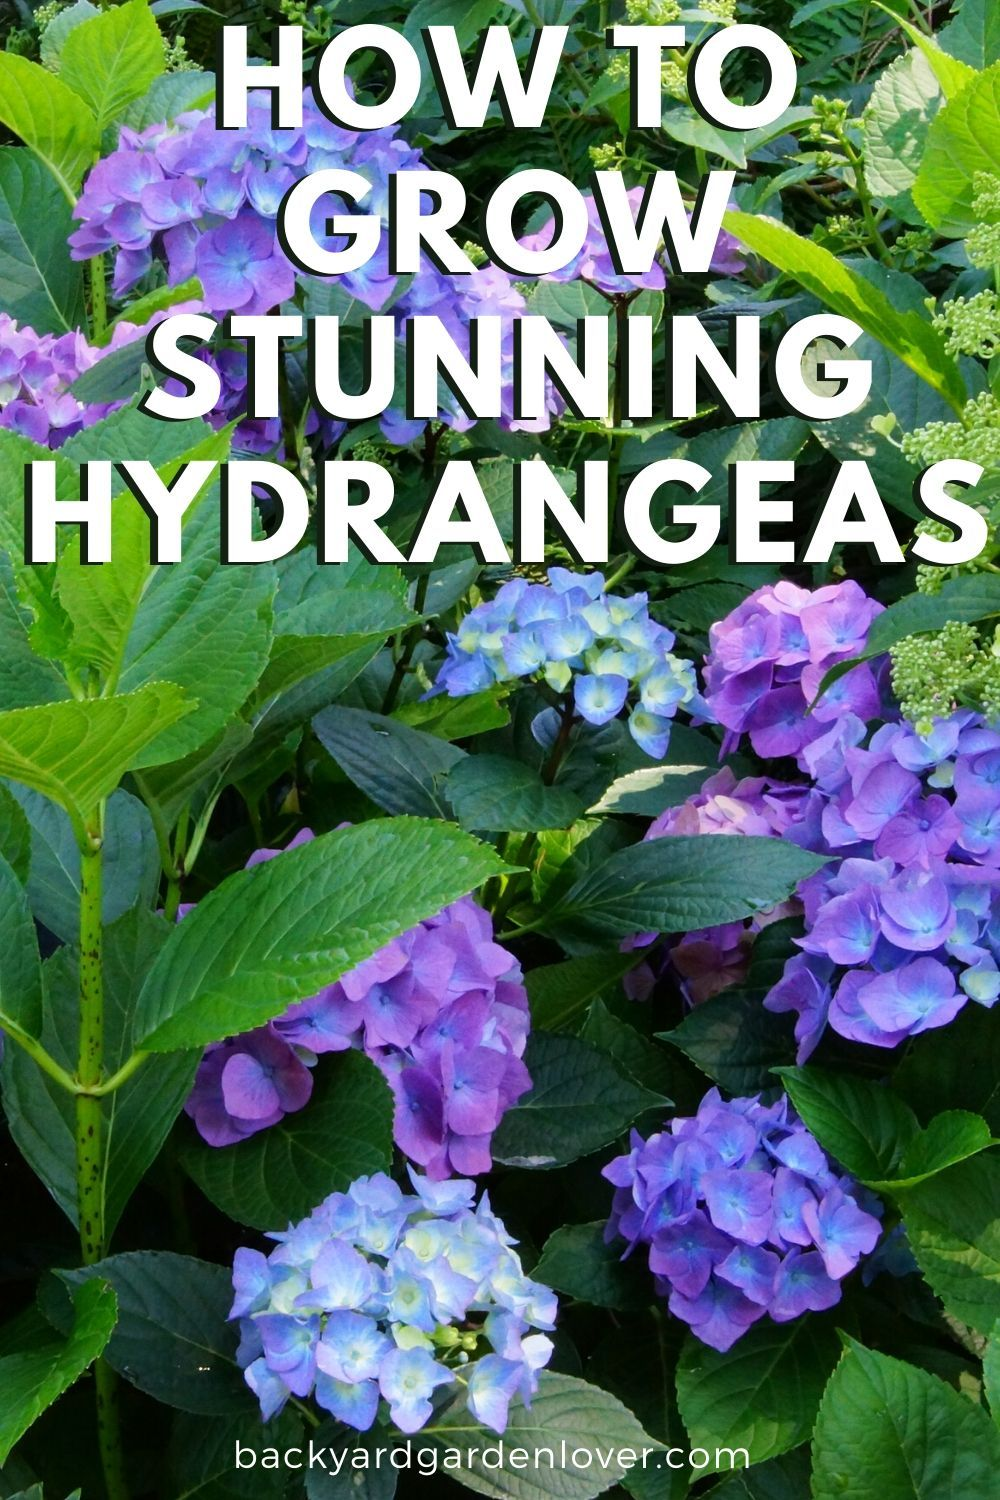 How To Care For Hydrangea Plants Bushes Tips For Gorgeous Hydrangeas In 2020 Planting Hydrangeas Hydrangea Care Garden Care